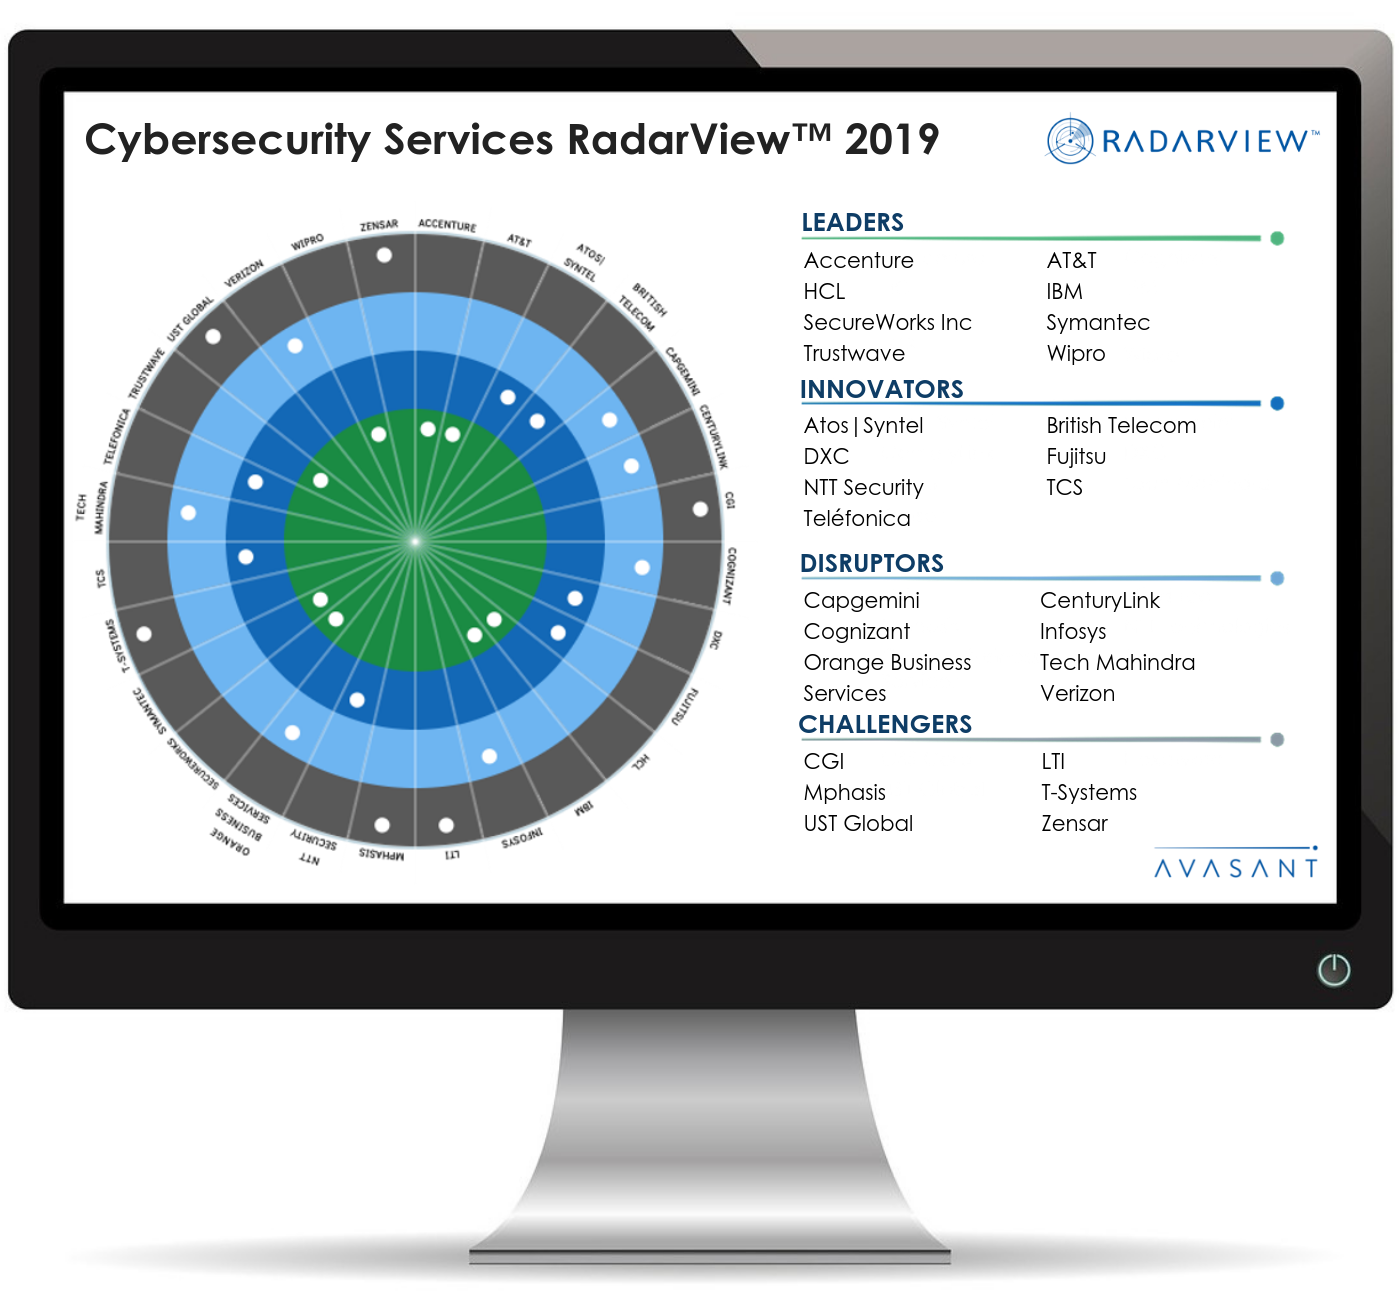 Copy of Copy of Ai and Applied Analytics full 2 - Cybersecurity Services 2019 Symantec RadarView™ Profile